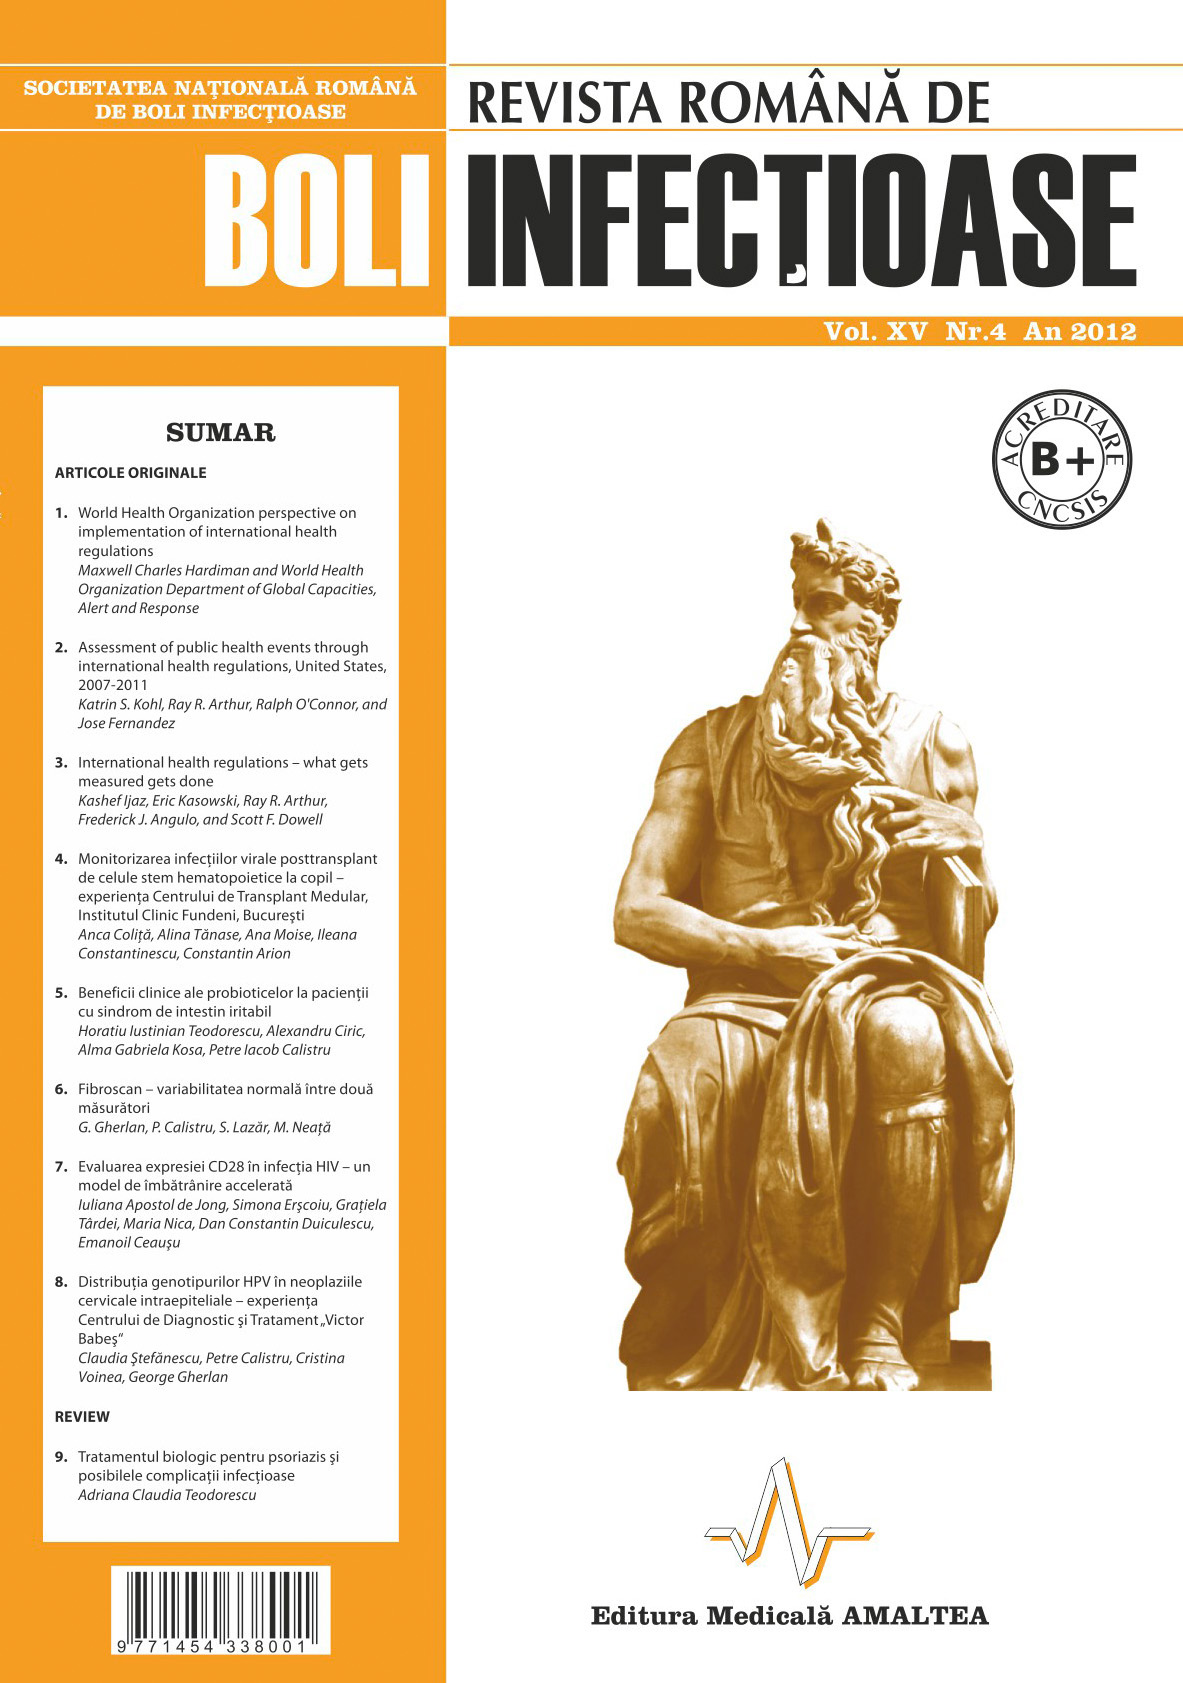 Revista Romana de Boli Infectioase | Vol. XV, No. 4, 2012